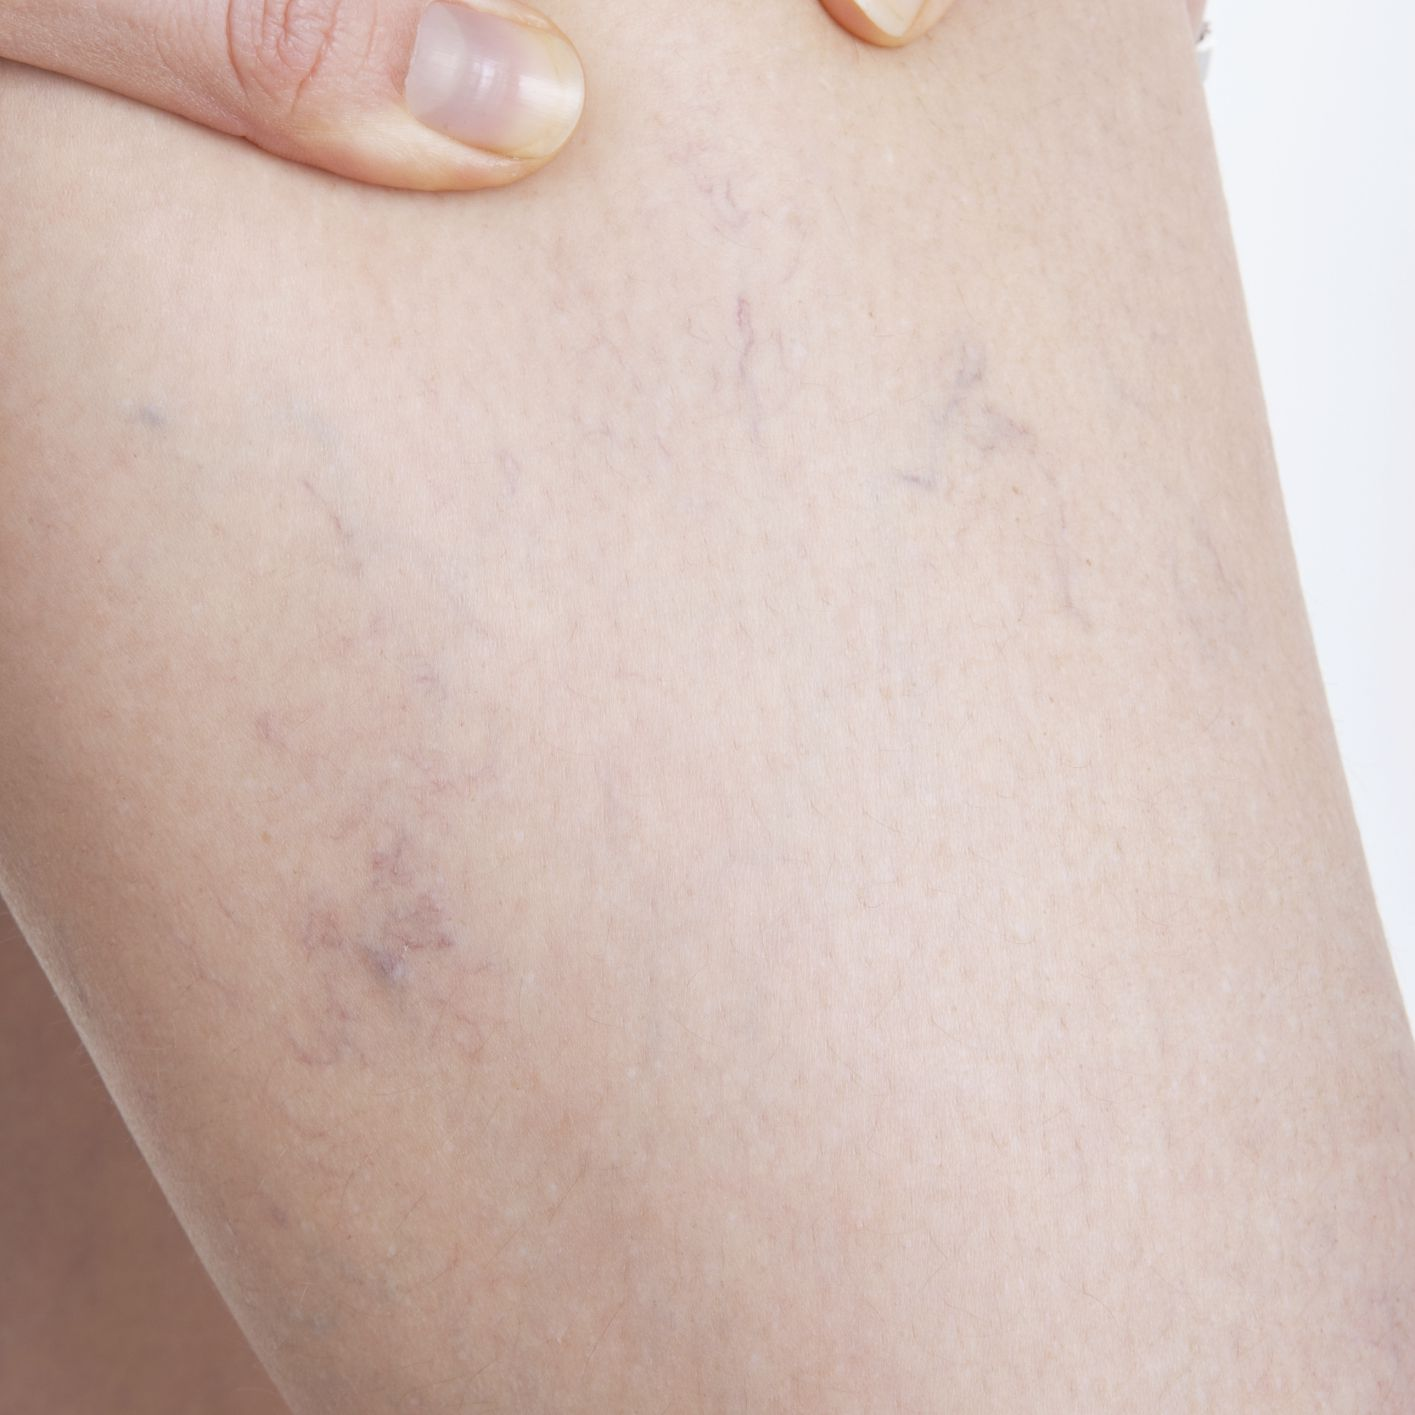 Woman with spider veins